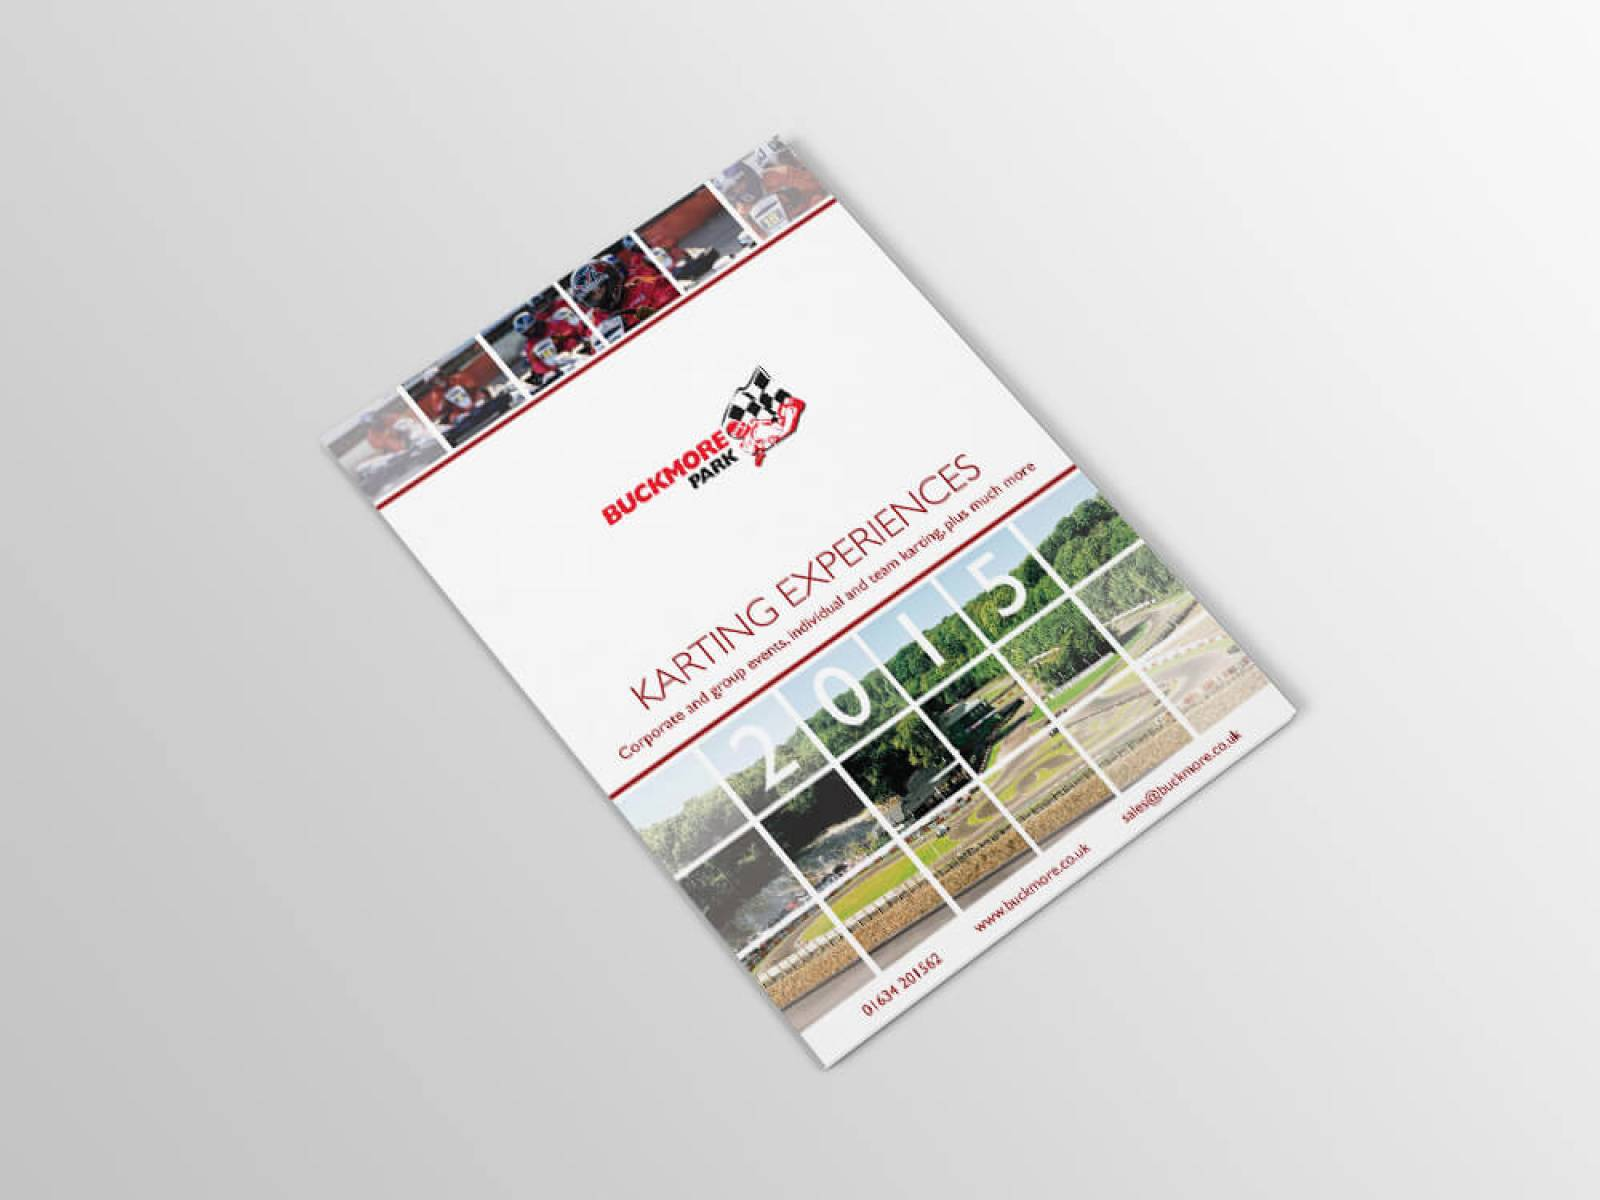 Brochure-Buckmore-park-brochure-1-design-agency-graphic-design-canterbury.jpg